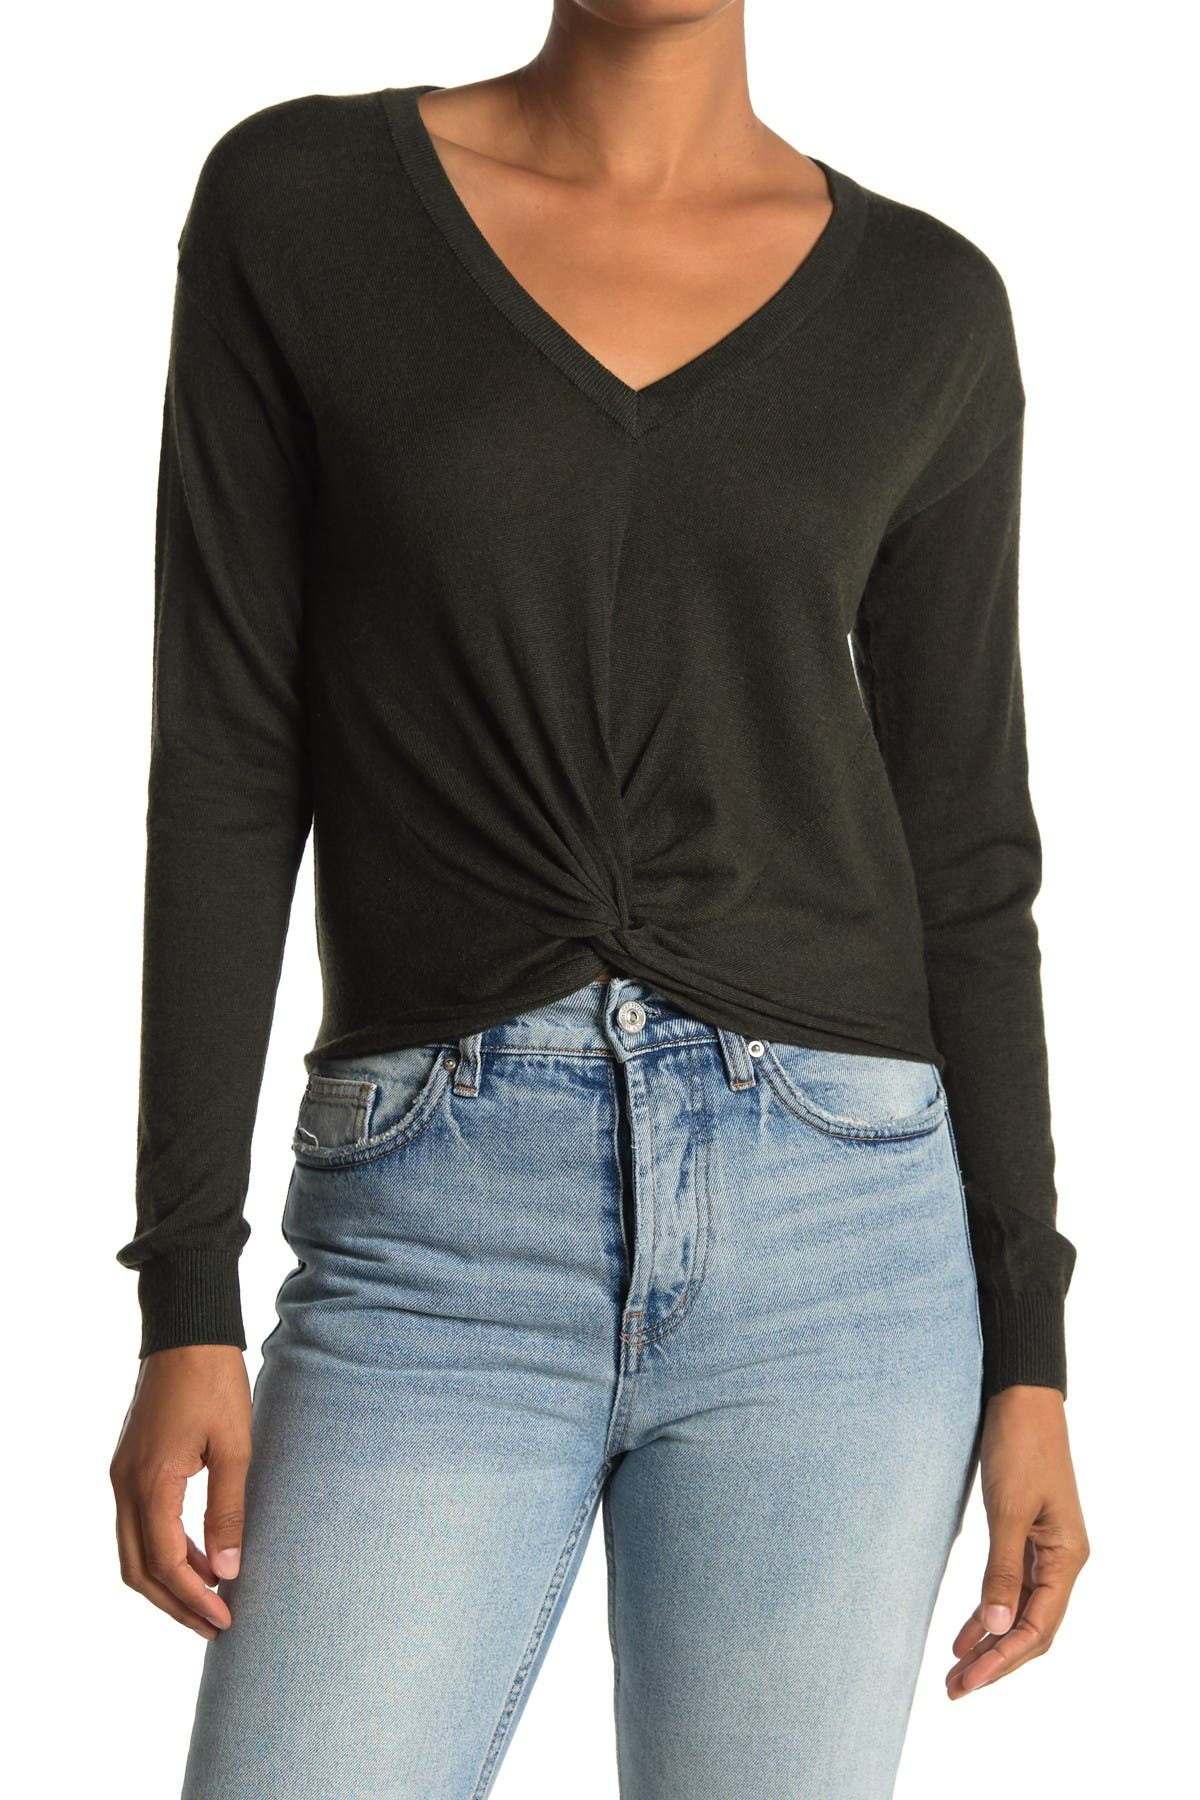 Image of Heartloom Twist Front V-Neck Sweater